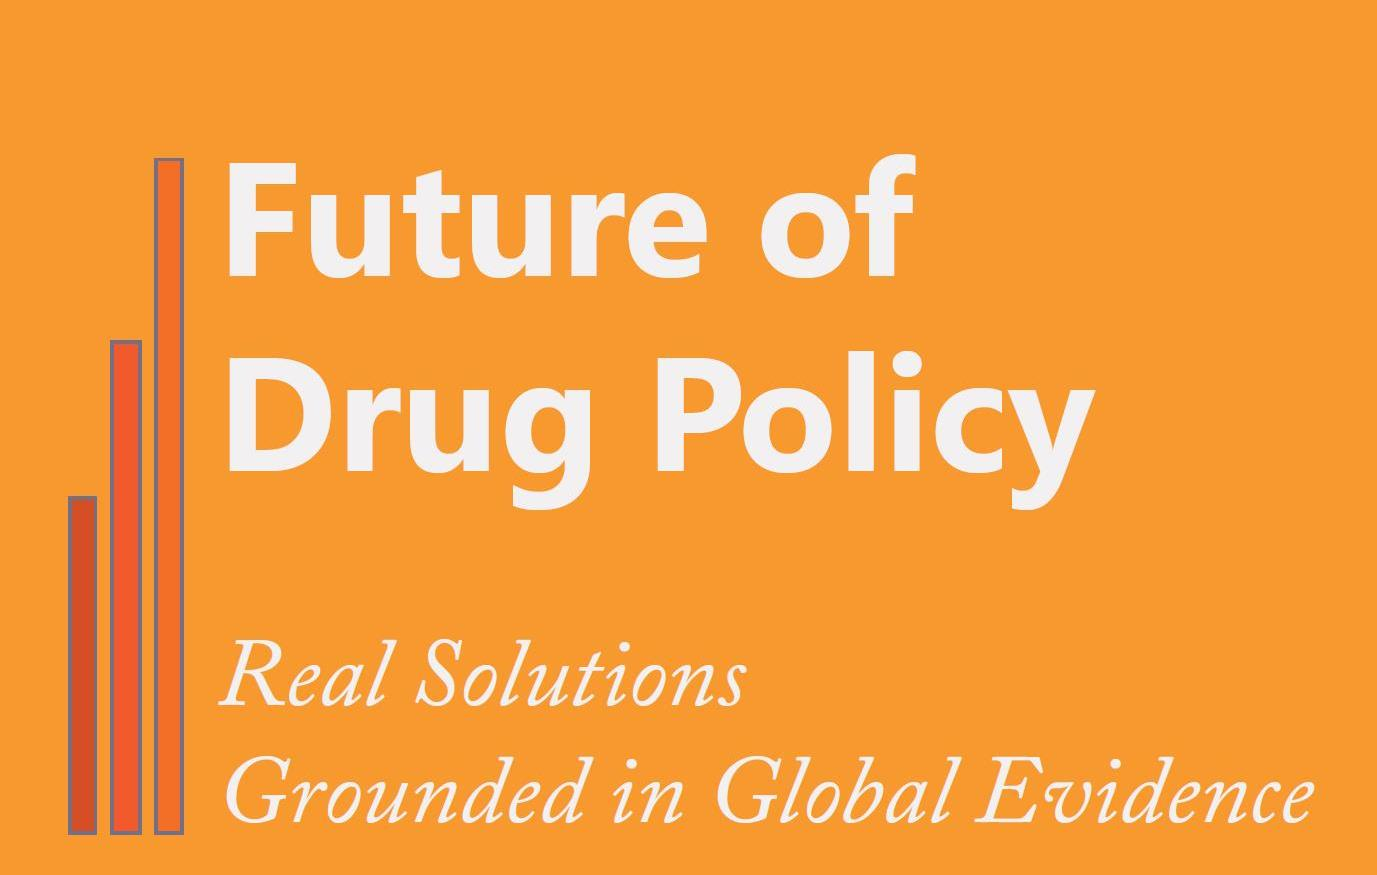 Future of Drug Policy